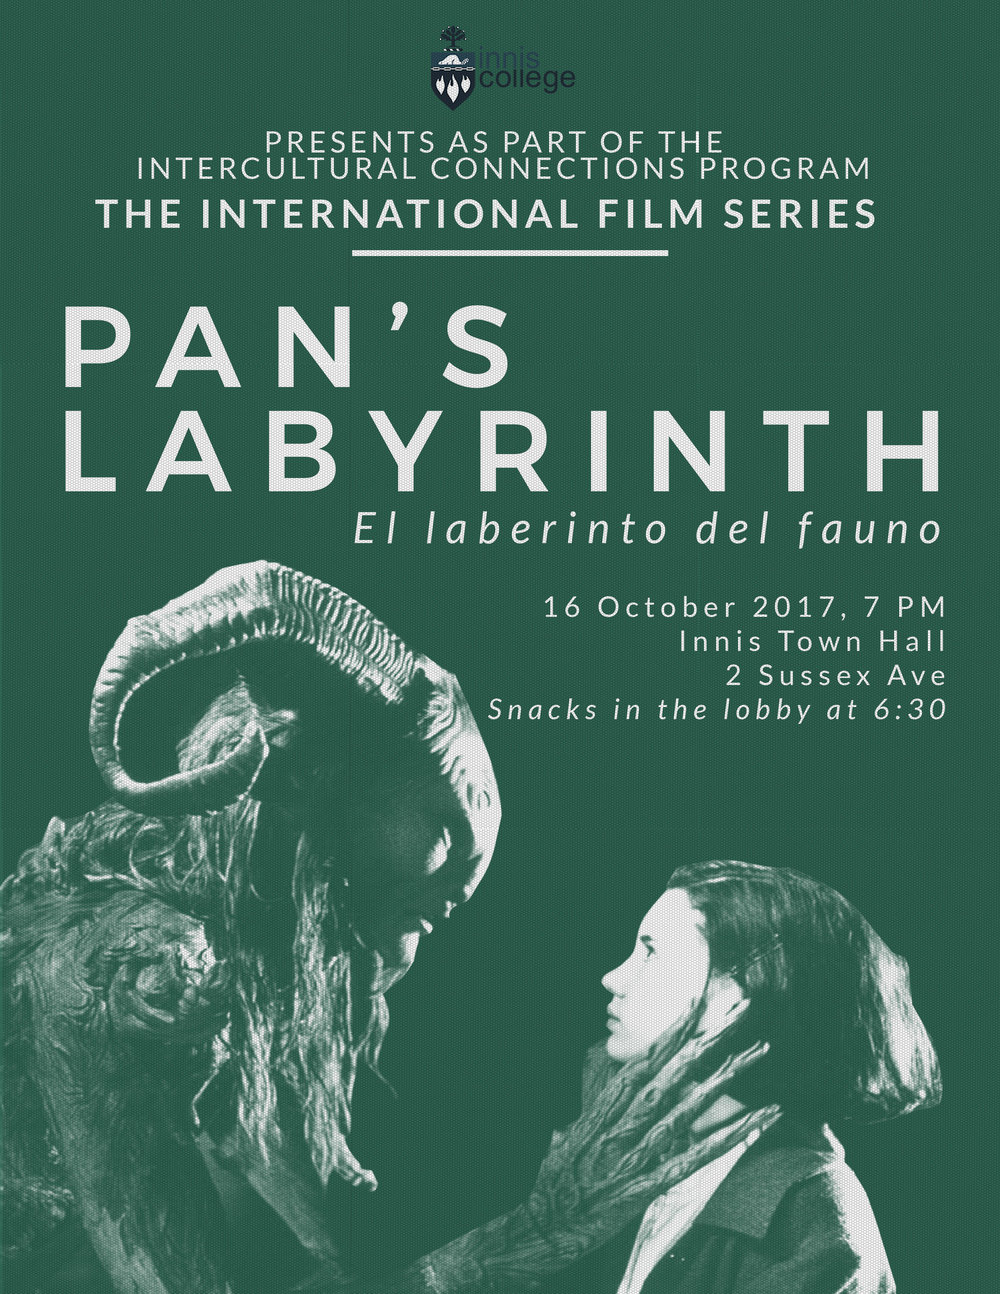 Innis College presents an upcoming screening of PAN'S LABYRINTH, Guillermo del Toro's mesmerizing 2006 dark fantasy.  Chosen as the second instalment of  InnisLife's  International Film Series, this free screening will be taking place at  Innis Town Hall  on Monday, October 16th at 7 PM.  Enjoy some Spanish snacks, available in the lobby at 6:30 PM before the screening begins - register today and check out the event page below!  Registration link:  http://innislife.utoronto.ca/event/pans-labyrinth